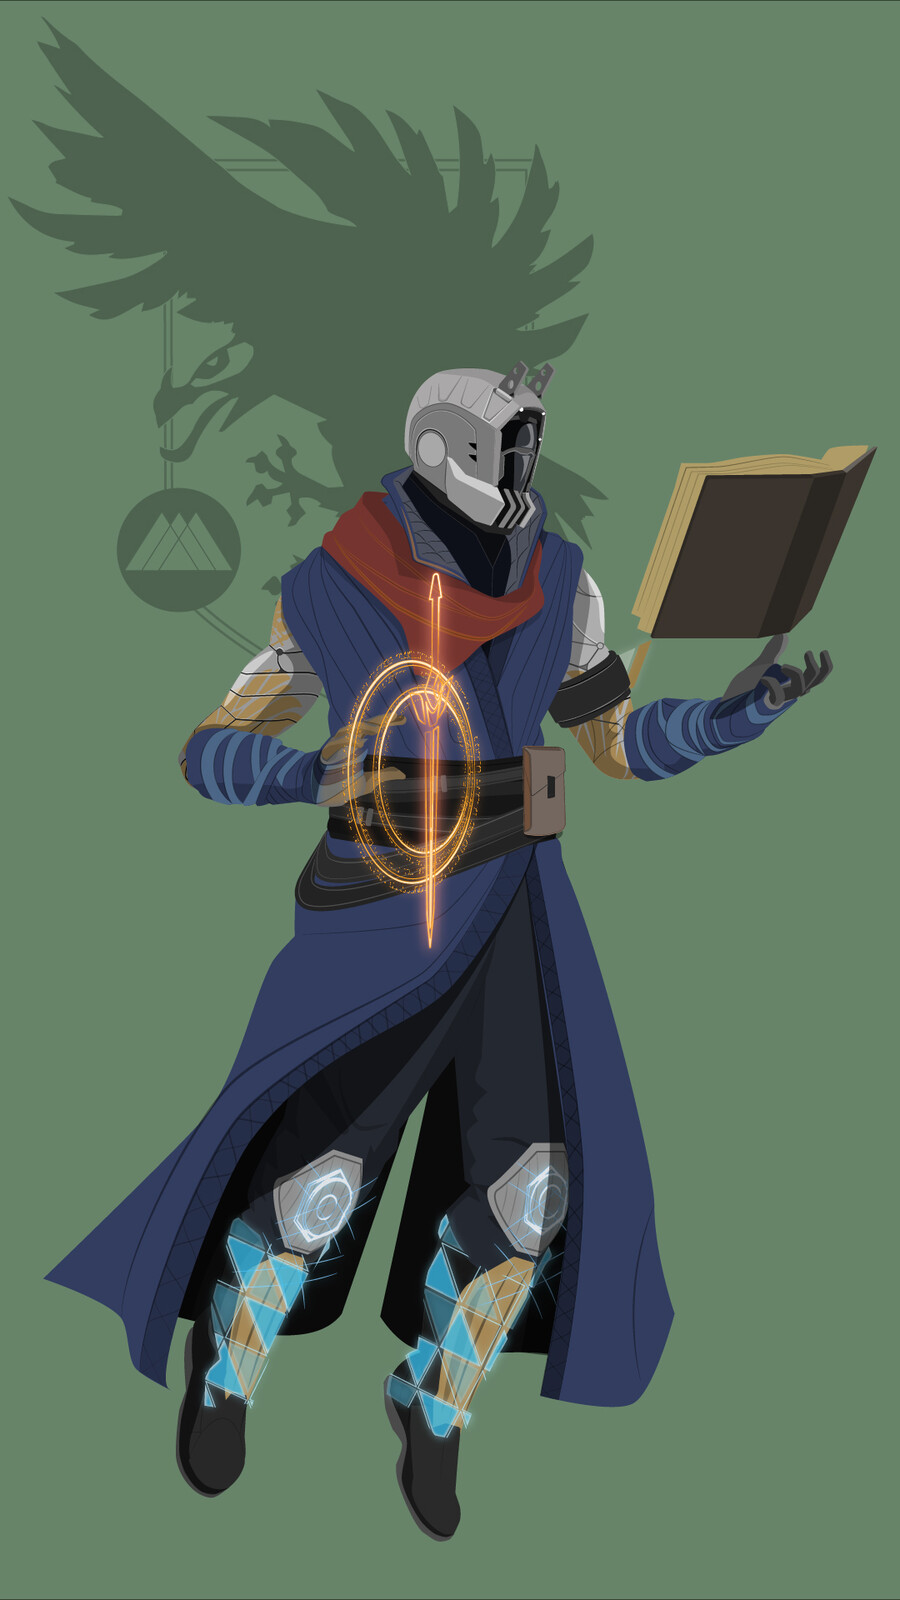 Some noodling character art of my Guardians